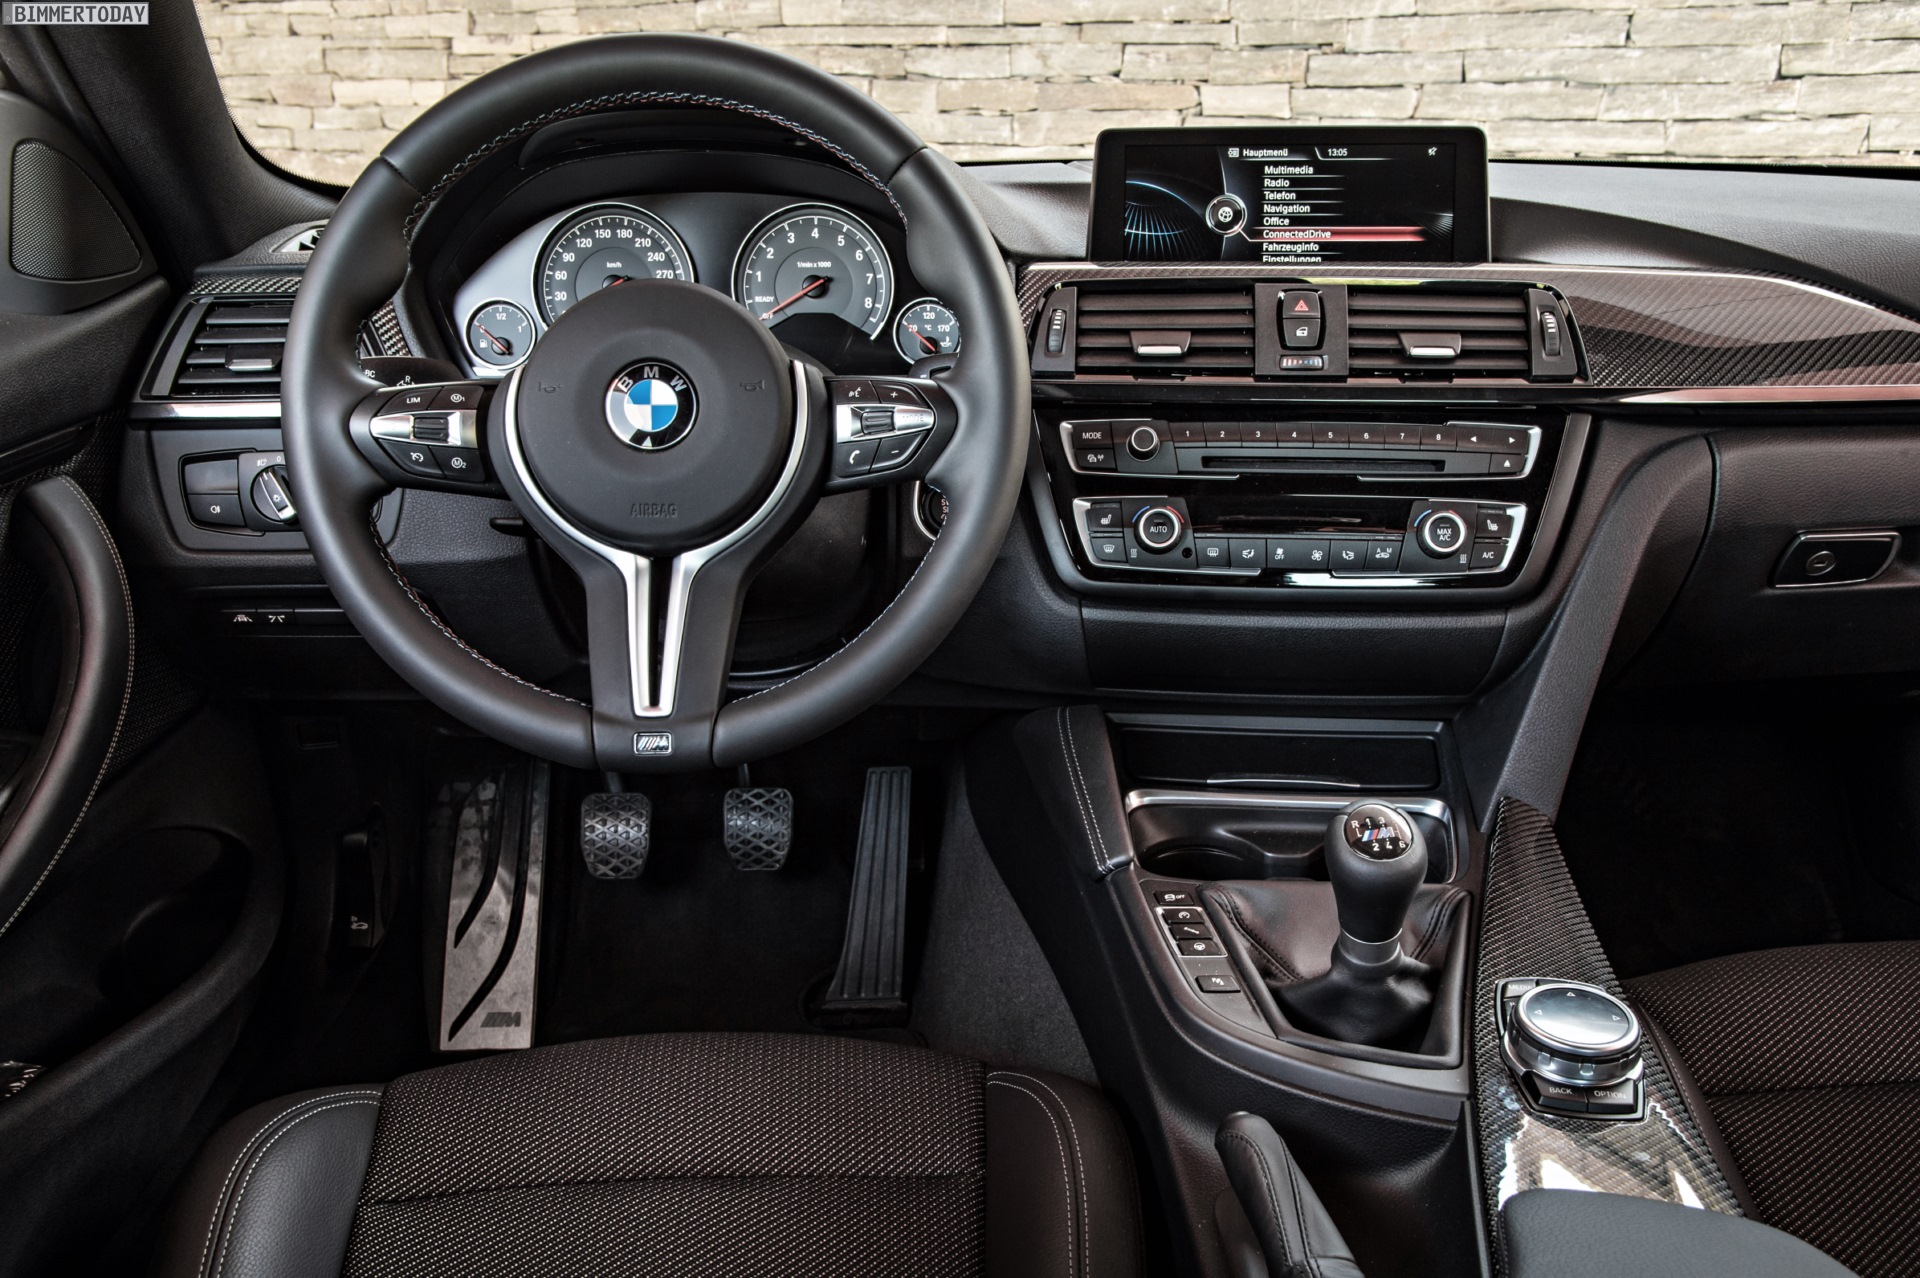 BMW Cars - Wallpapers: BMW M4 Coupe in Sapphire Black